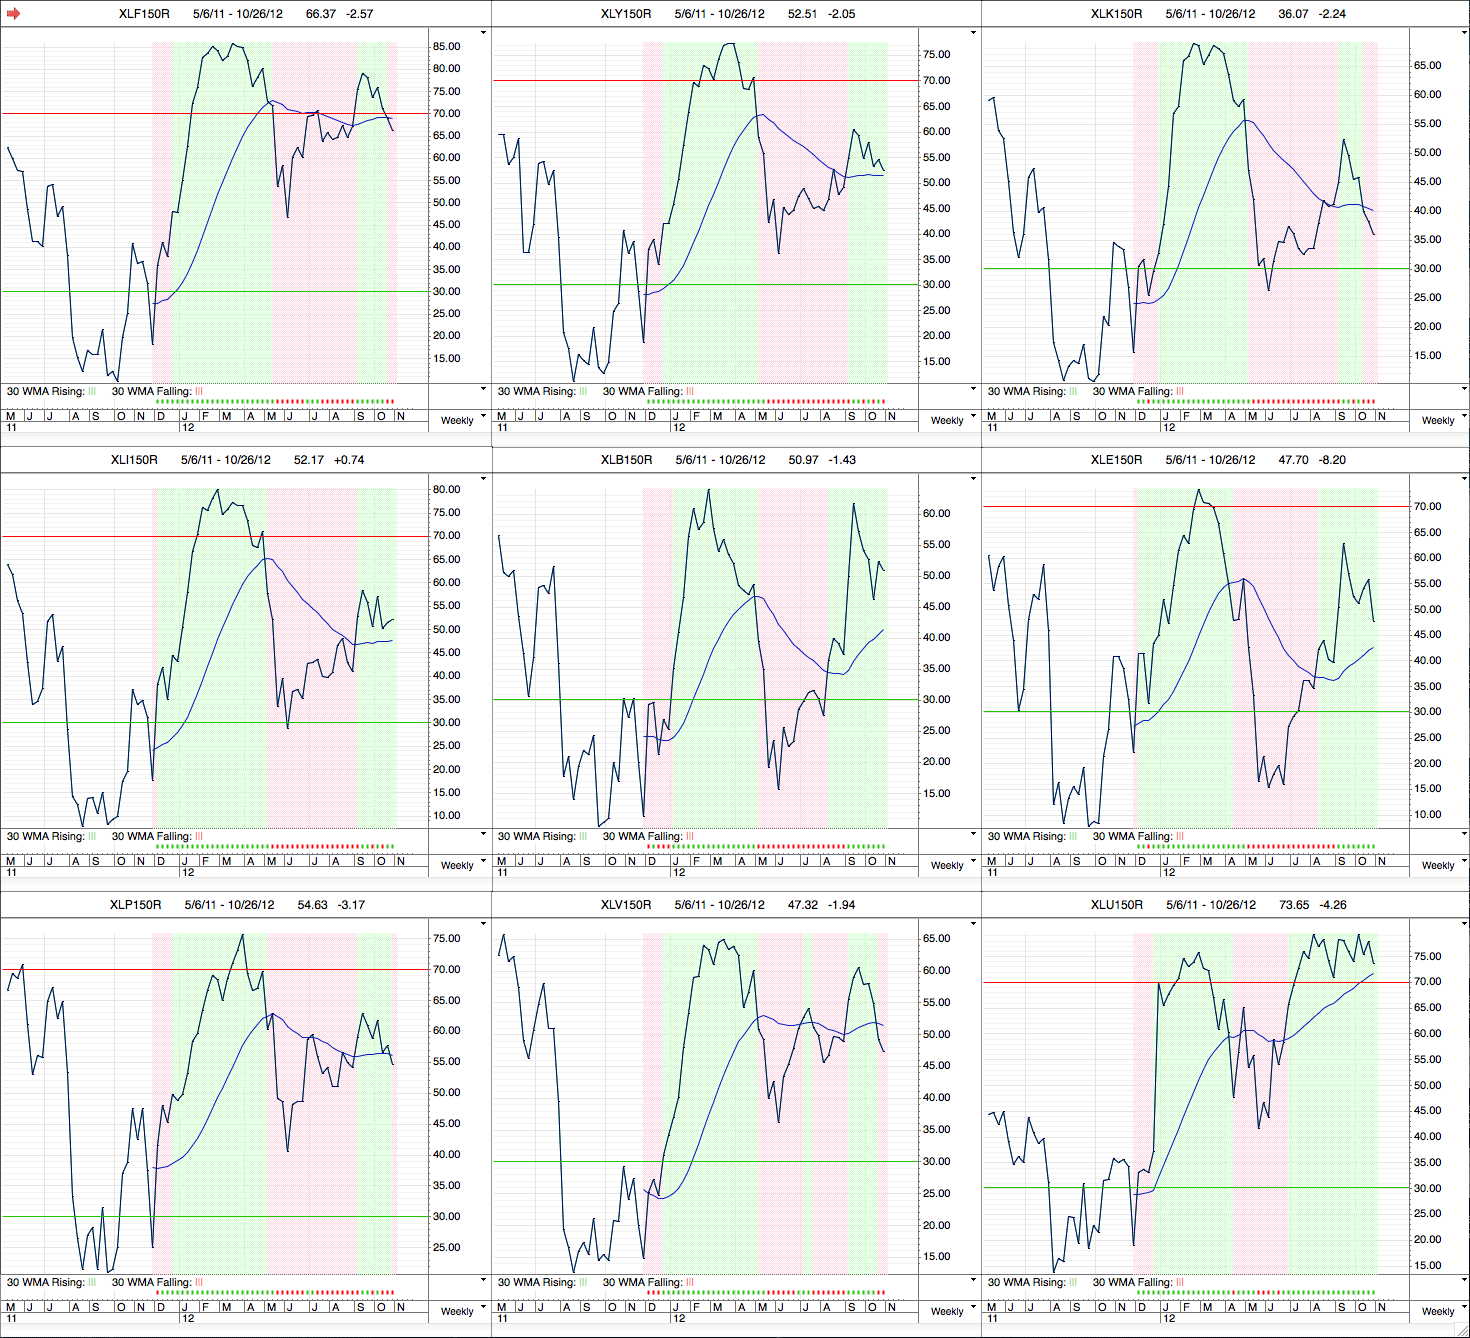 sector_breadth_26-10-12.png